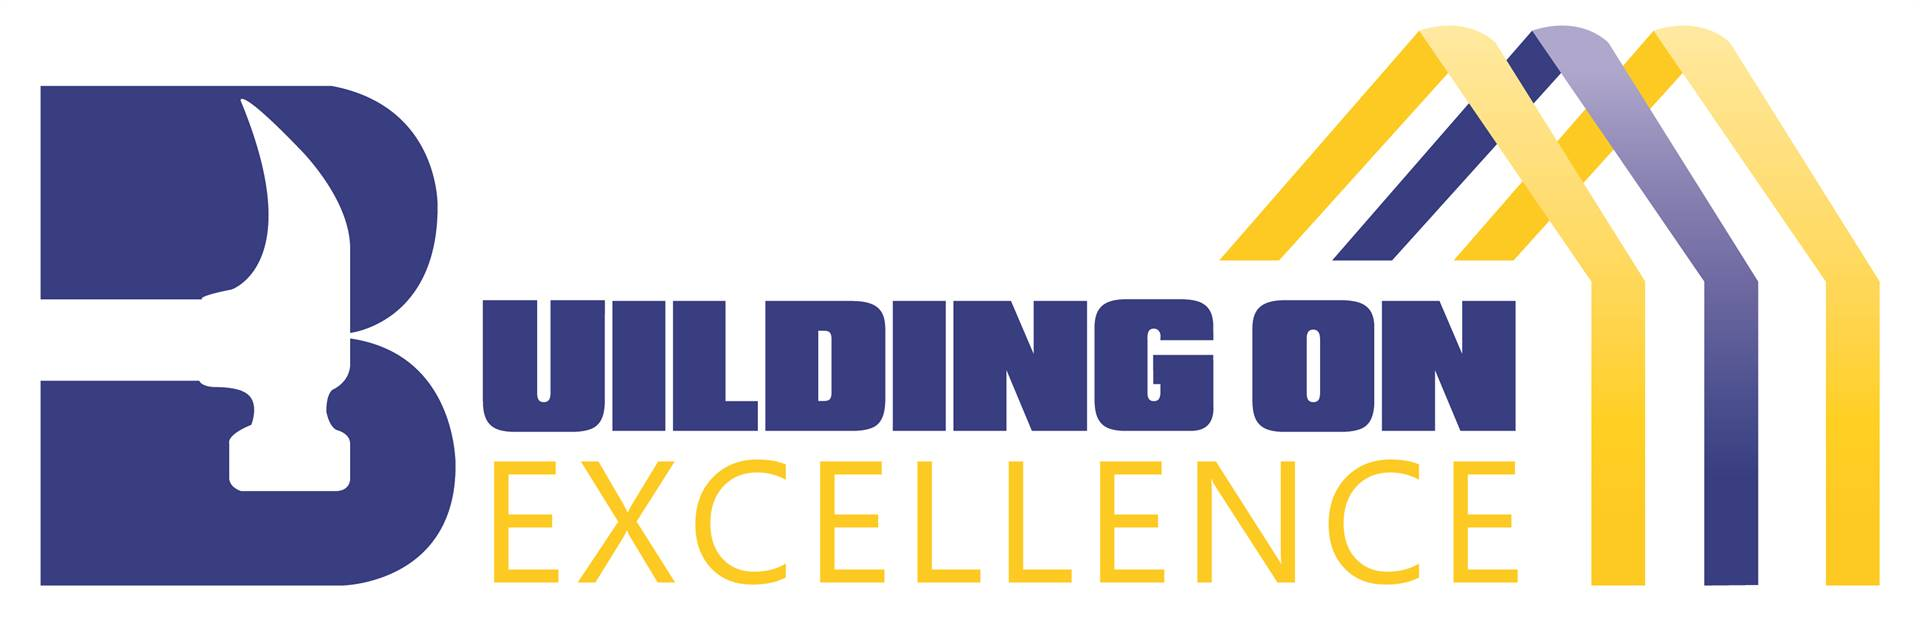 Building on Excellence Logo